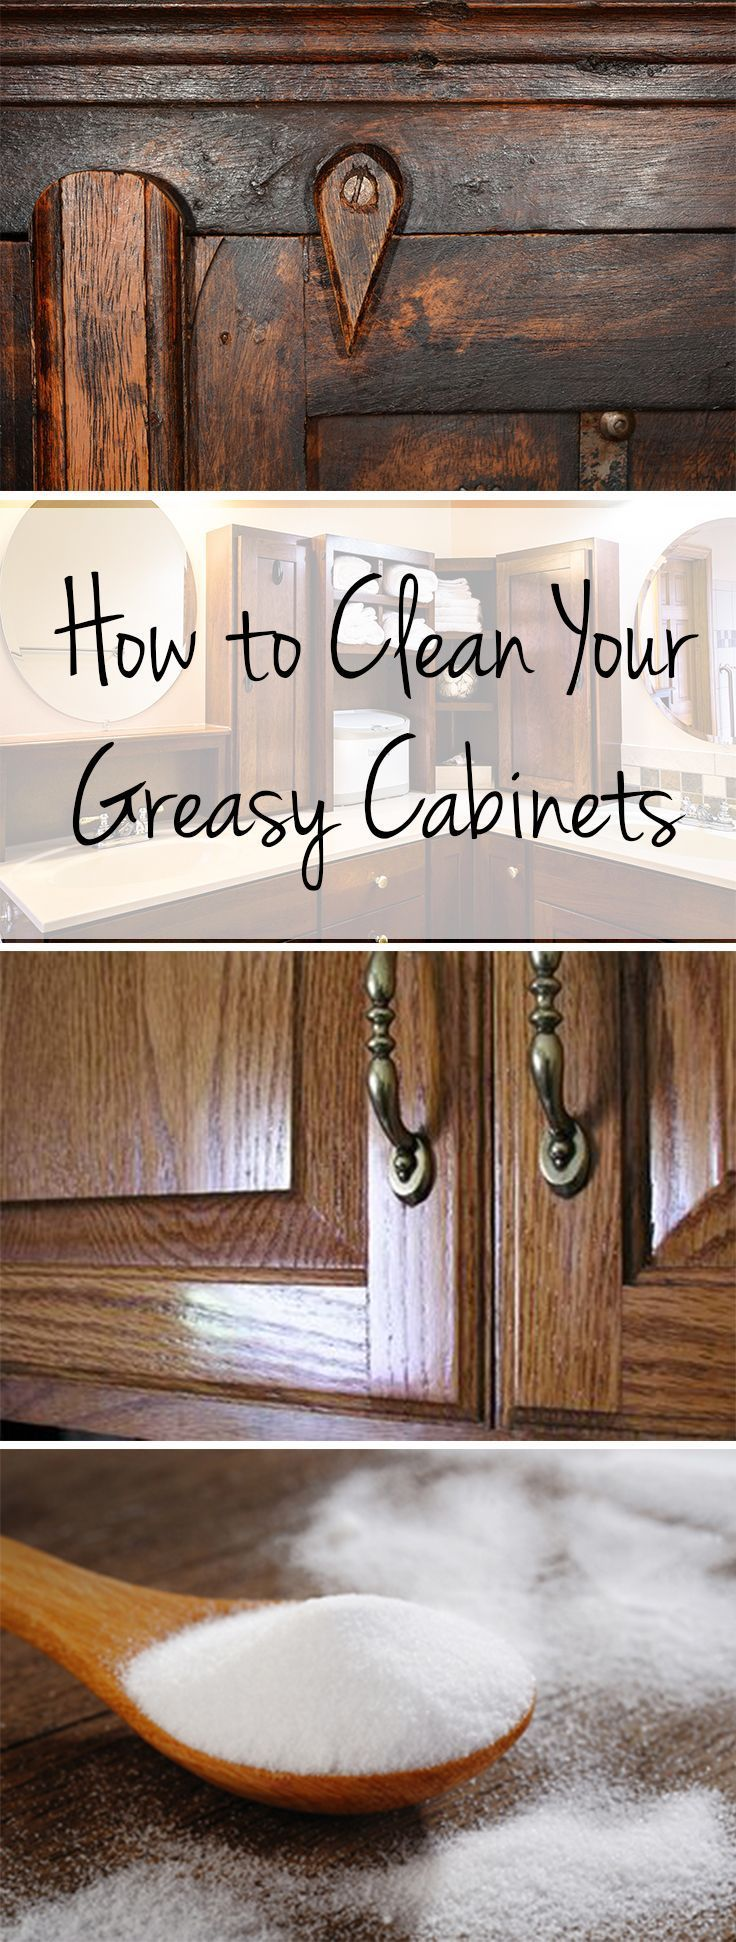 The Easy Way to Clean Greasy Cabinets   Cleaning hacks ...